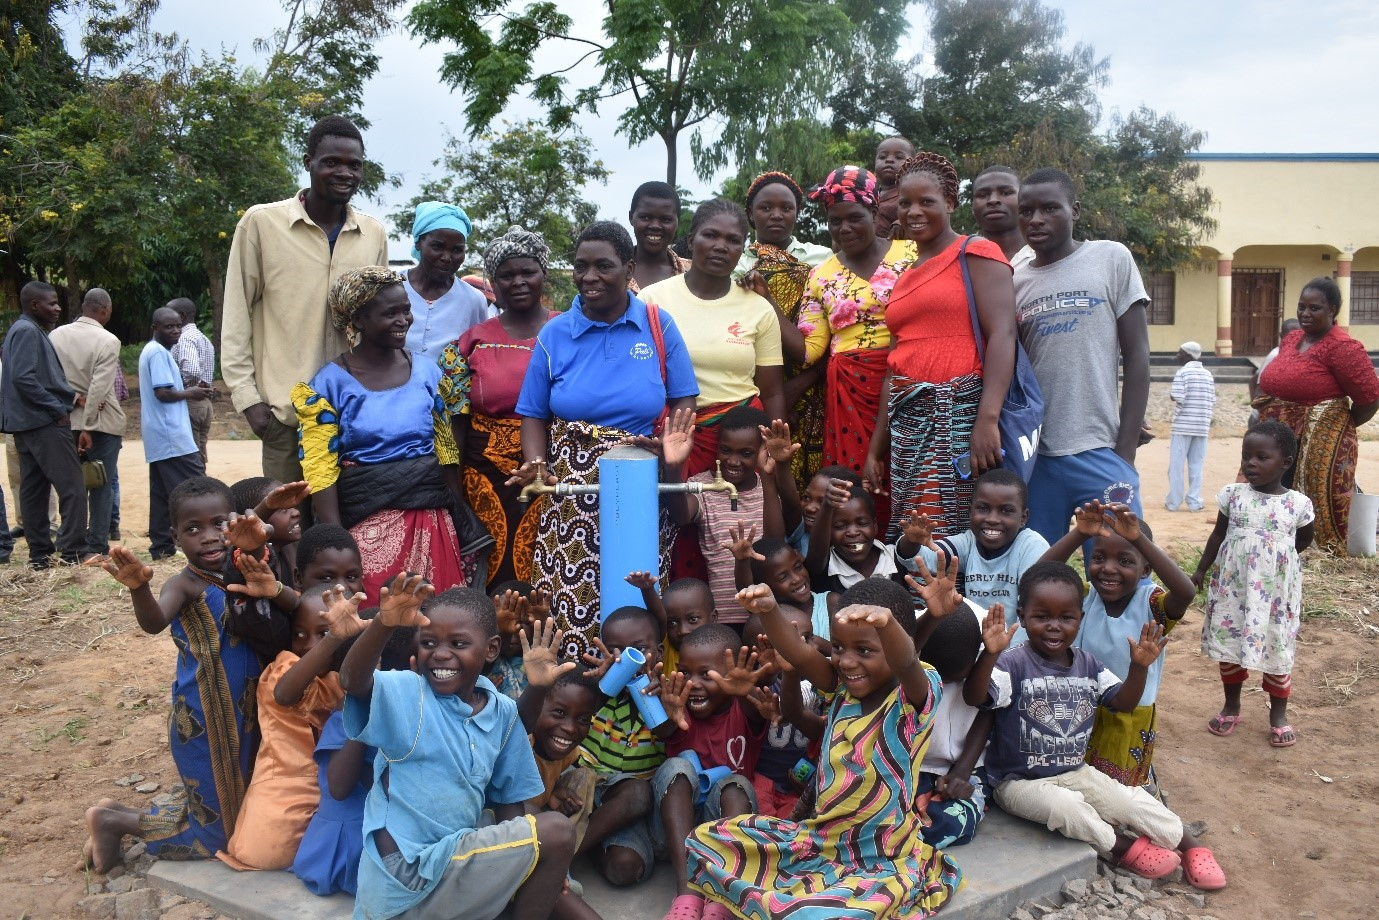 The happy Chimbiya Community embraces the new taps soon to have running water